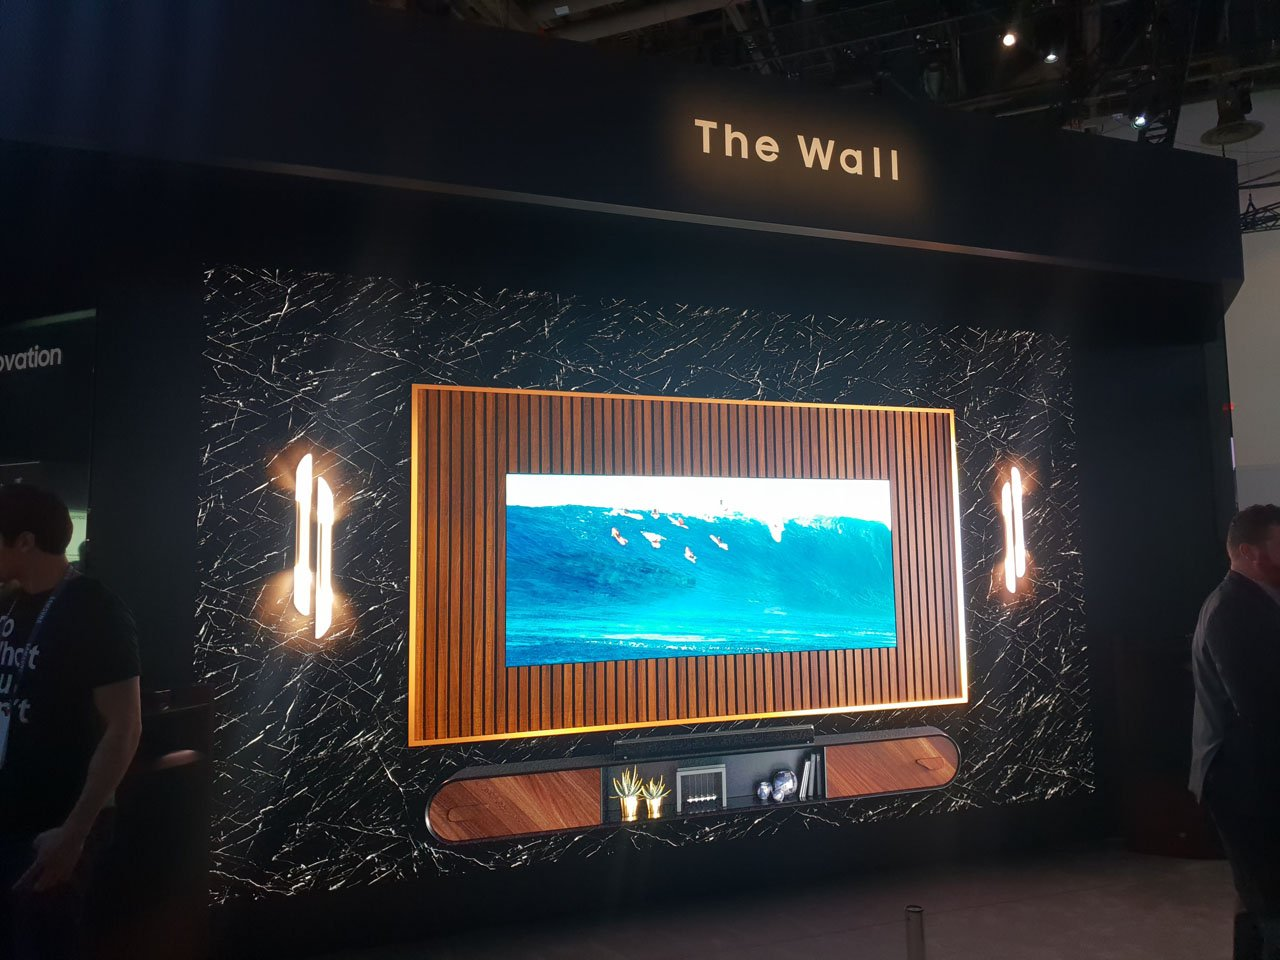 Samsung Wall CES 2019 (3)